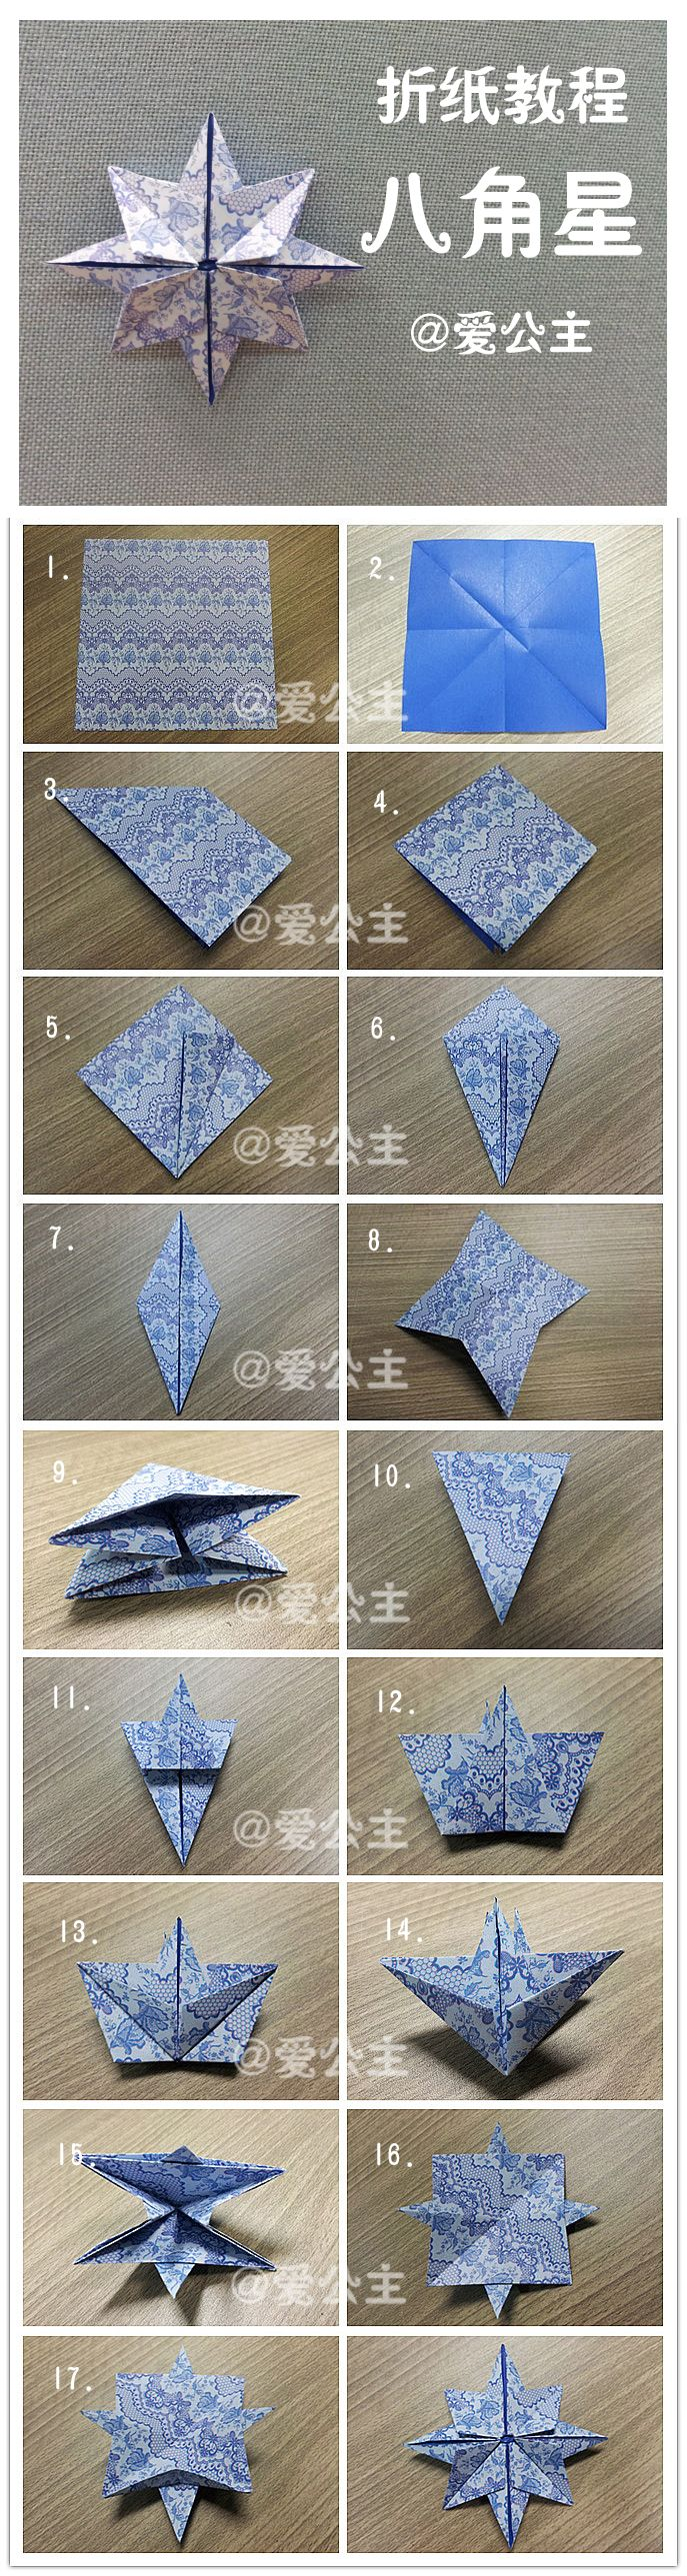 A Christmas star with blue patterned paper - just beautiful. #origami #diy